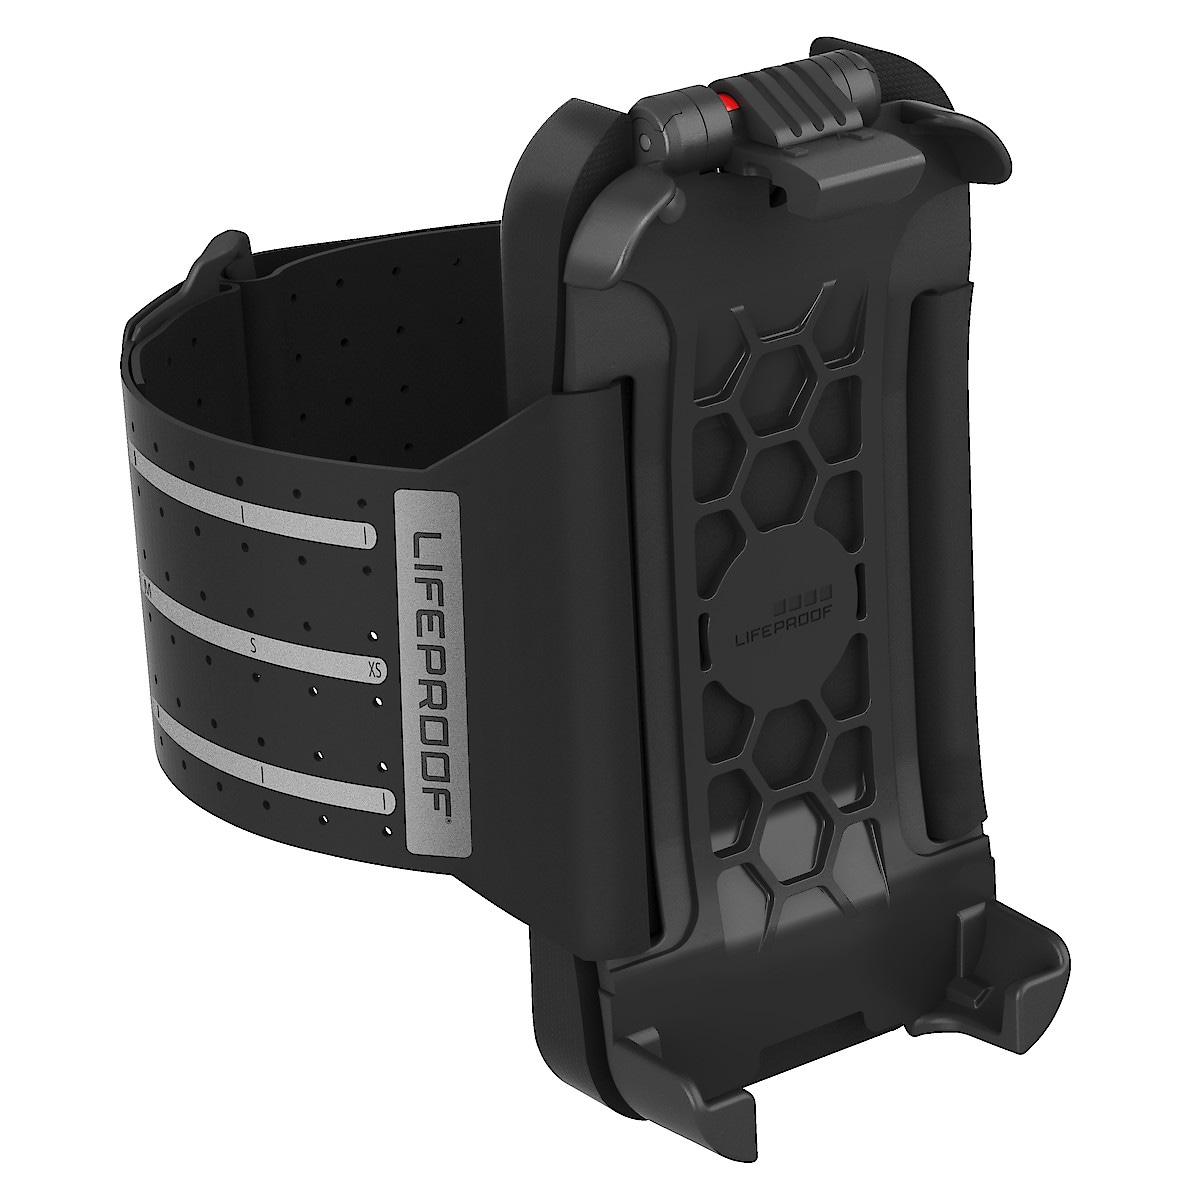 Lifeproof armholder for iPhone 5